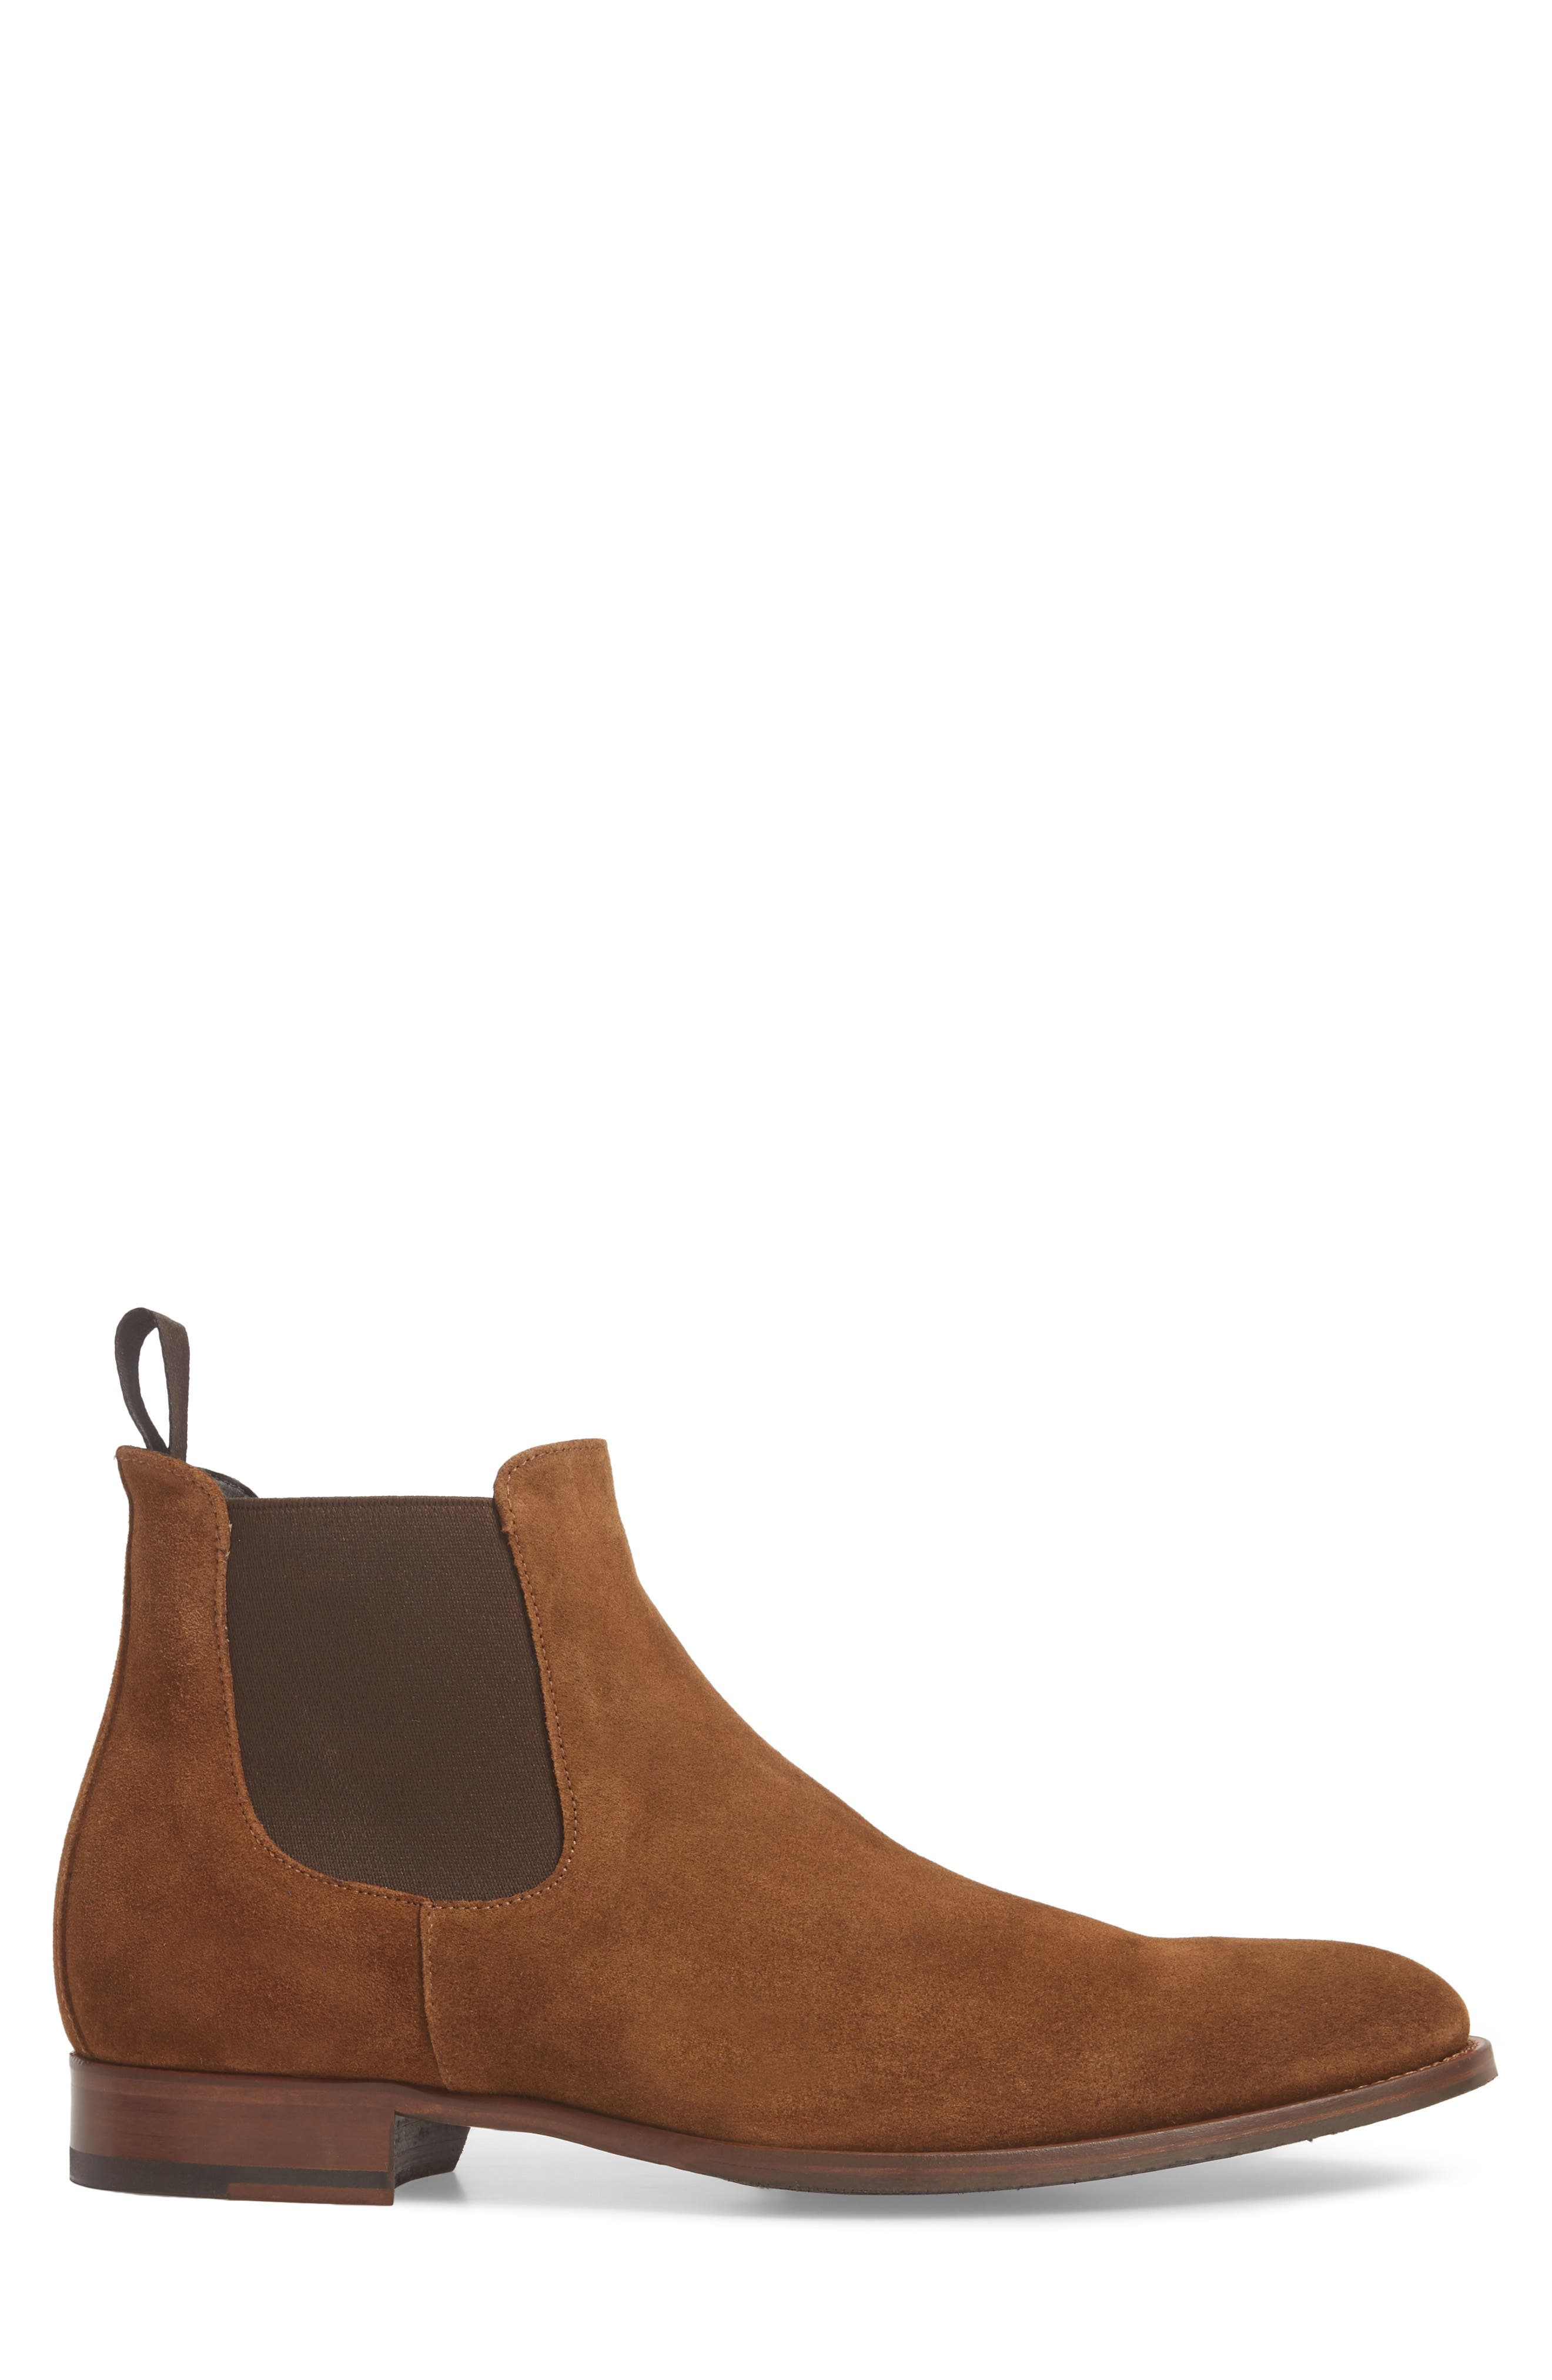 TO BOOT NEW YORK, Shelby Mid Chelsea Boot, Alternate thumbnail 3, color, MID BROWN SUEDE